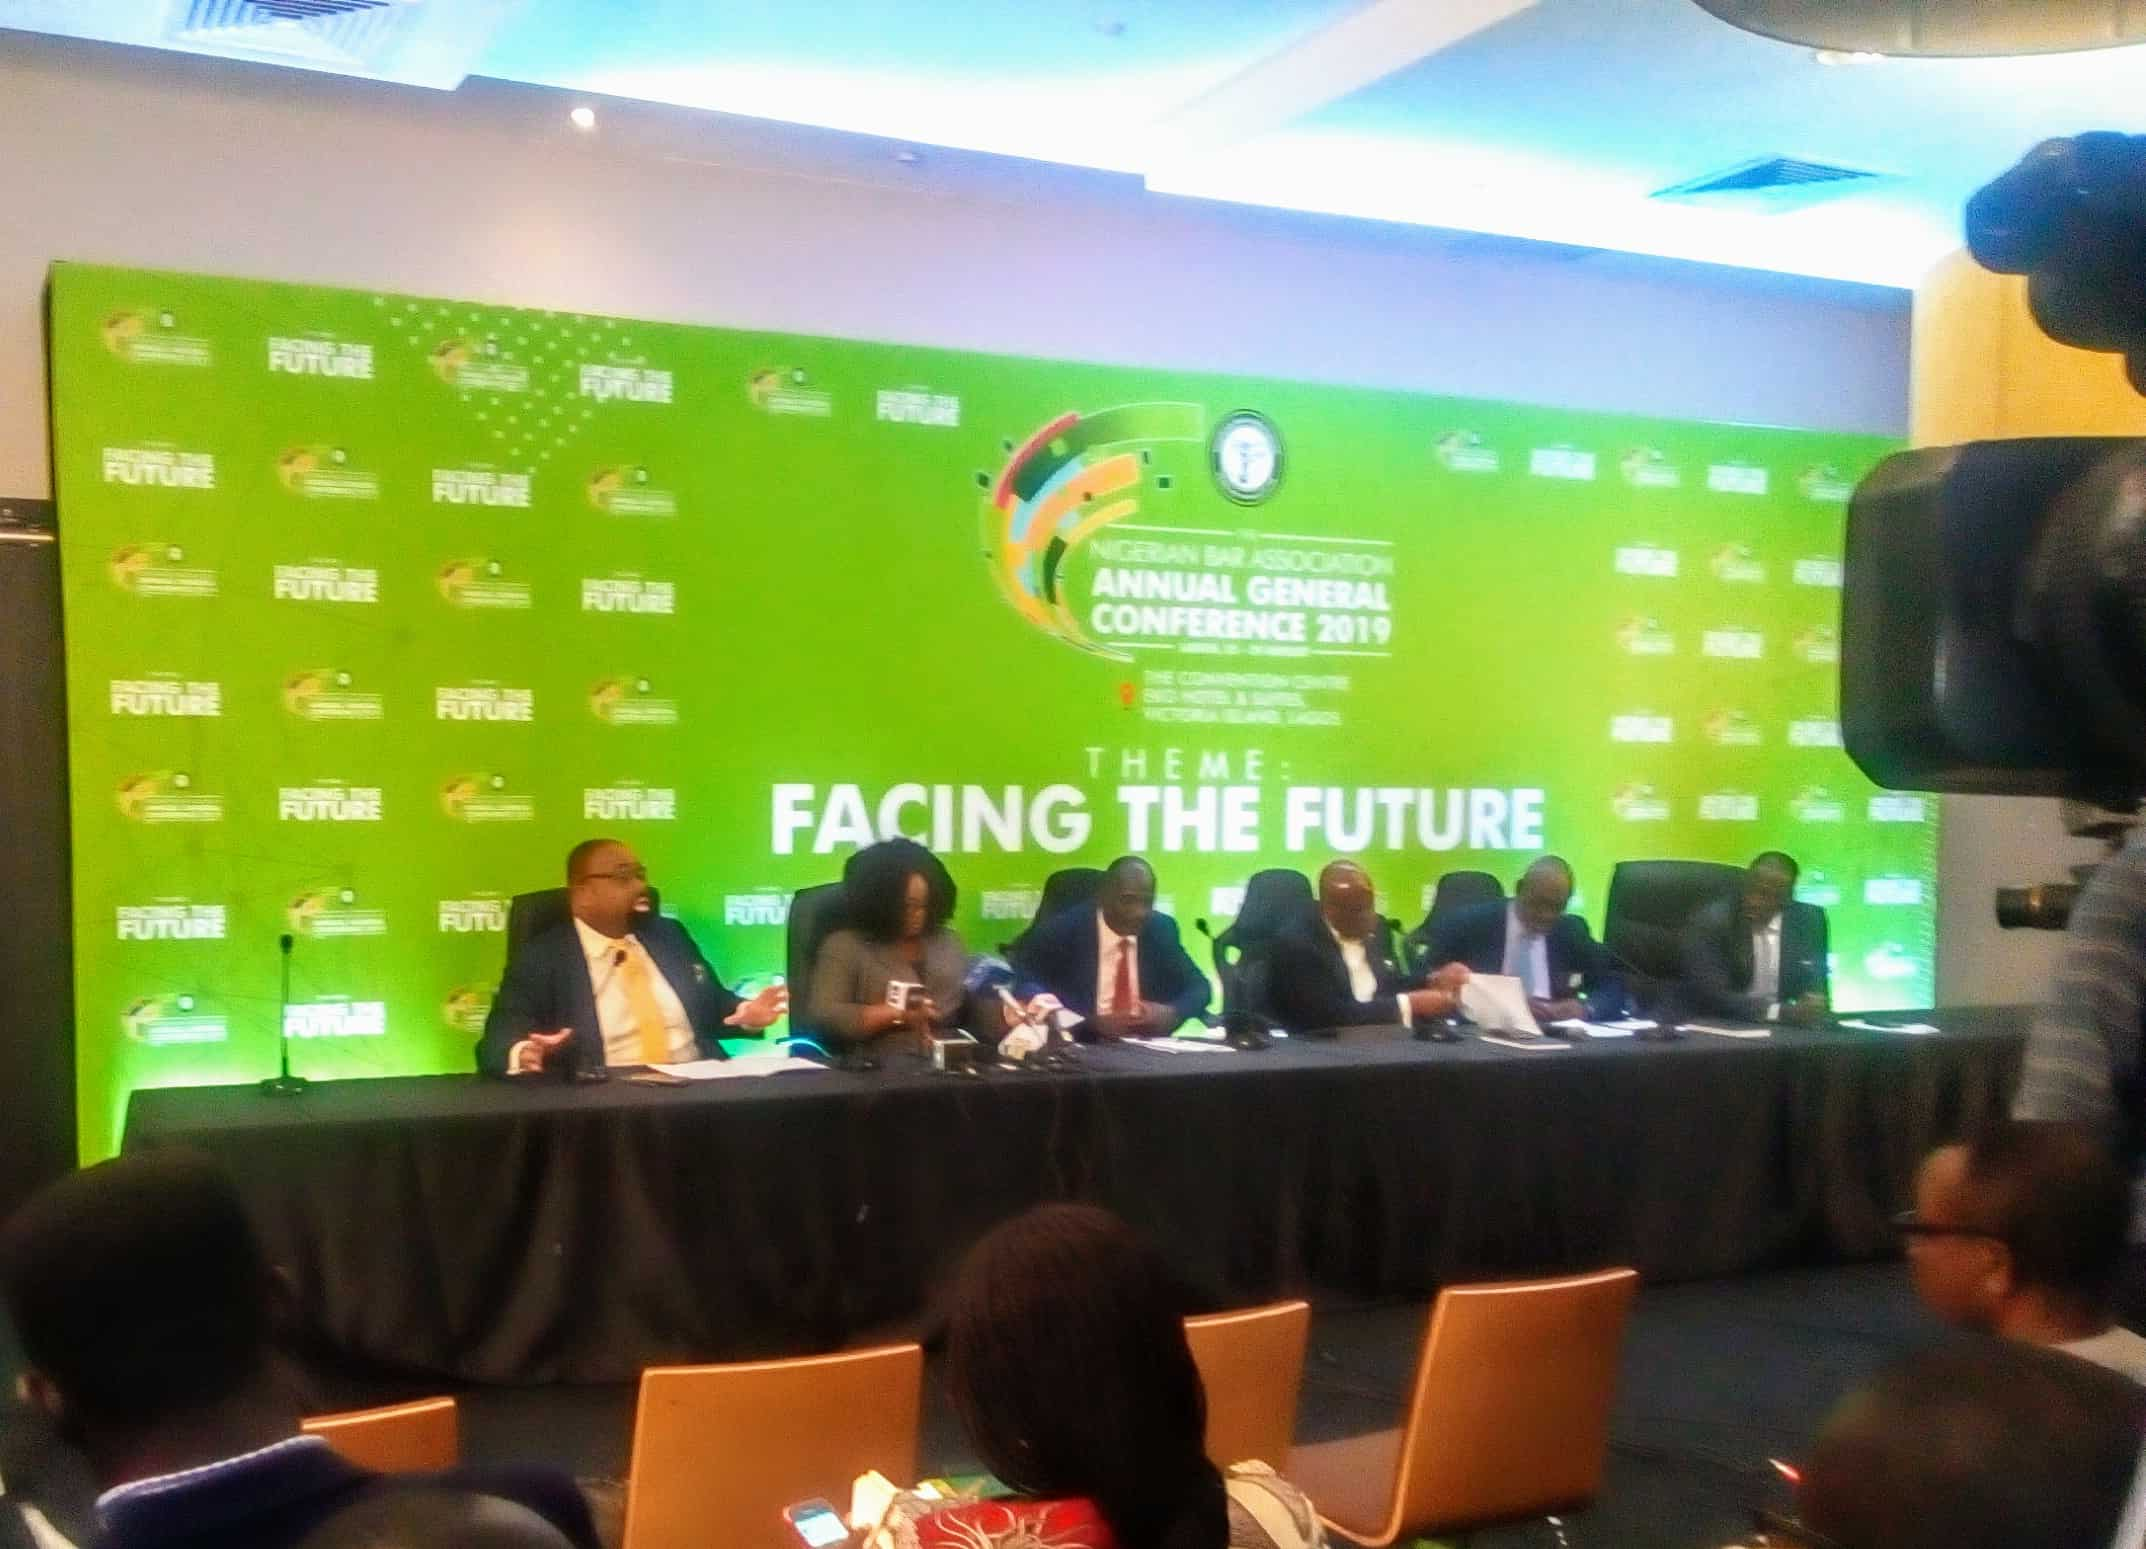 #NBA2019AGC Press Briefing Happening Now  We are Ready!